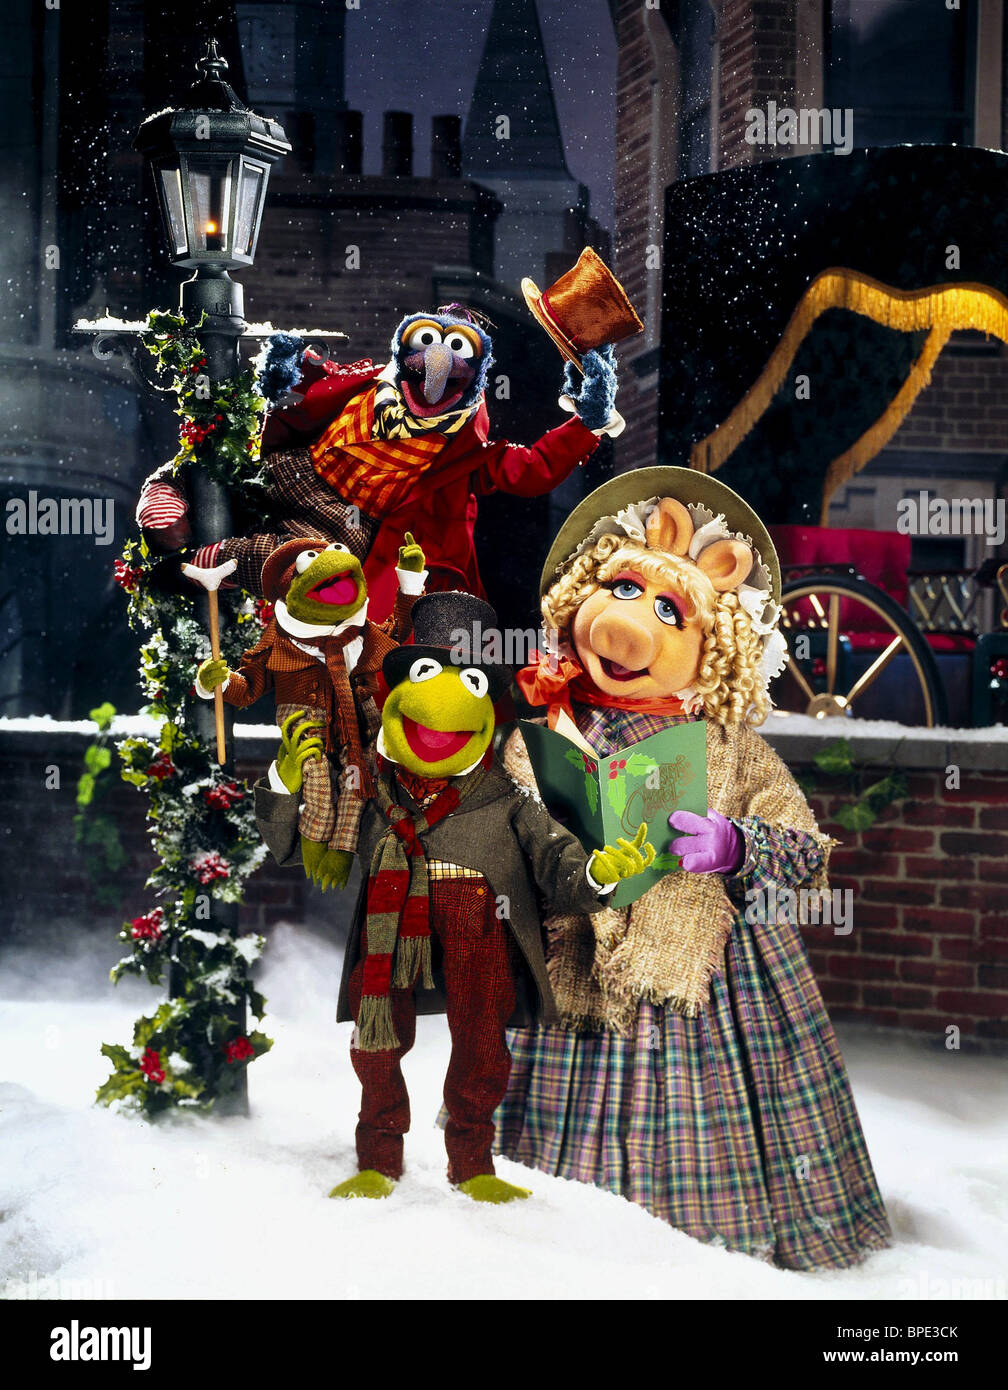 GONZO TINY TIM KERMIT THE FROG & MISS PIGGY THE MUPPET CHRISTMAS Stock Photo, Royalty Free Image ...